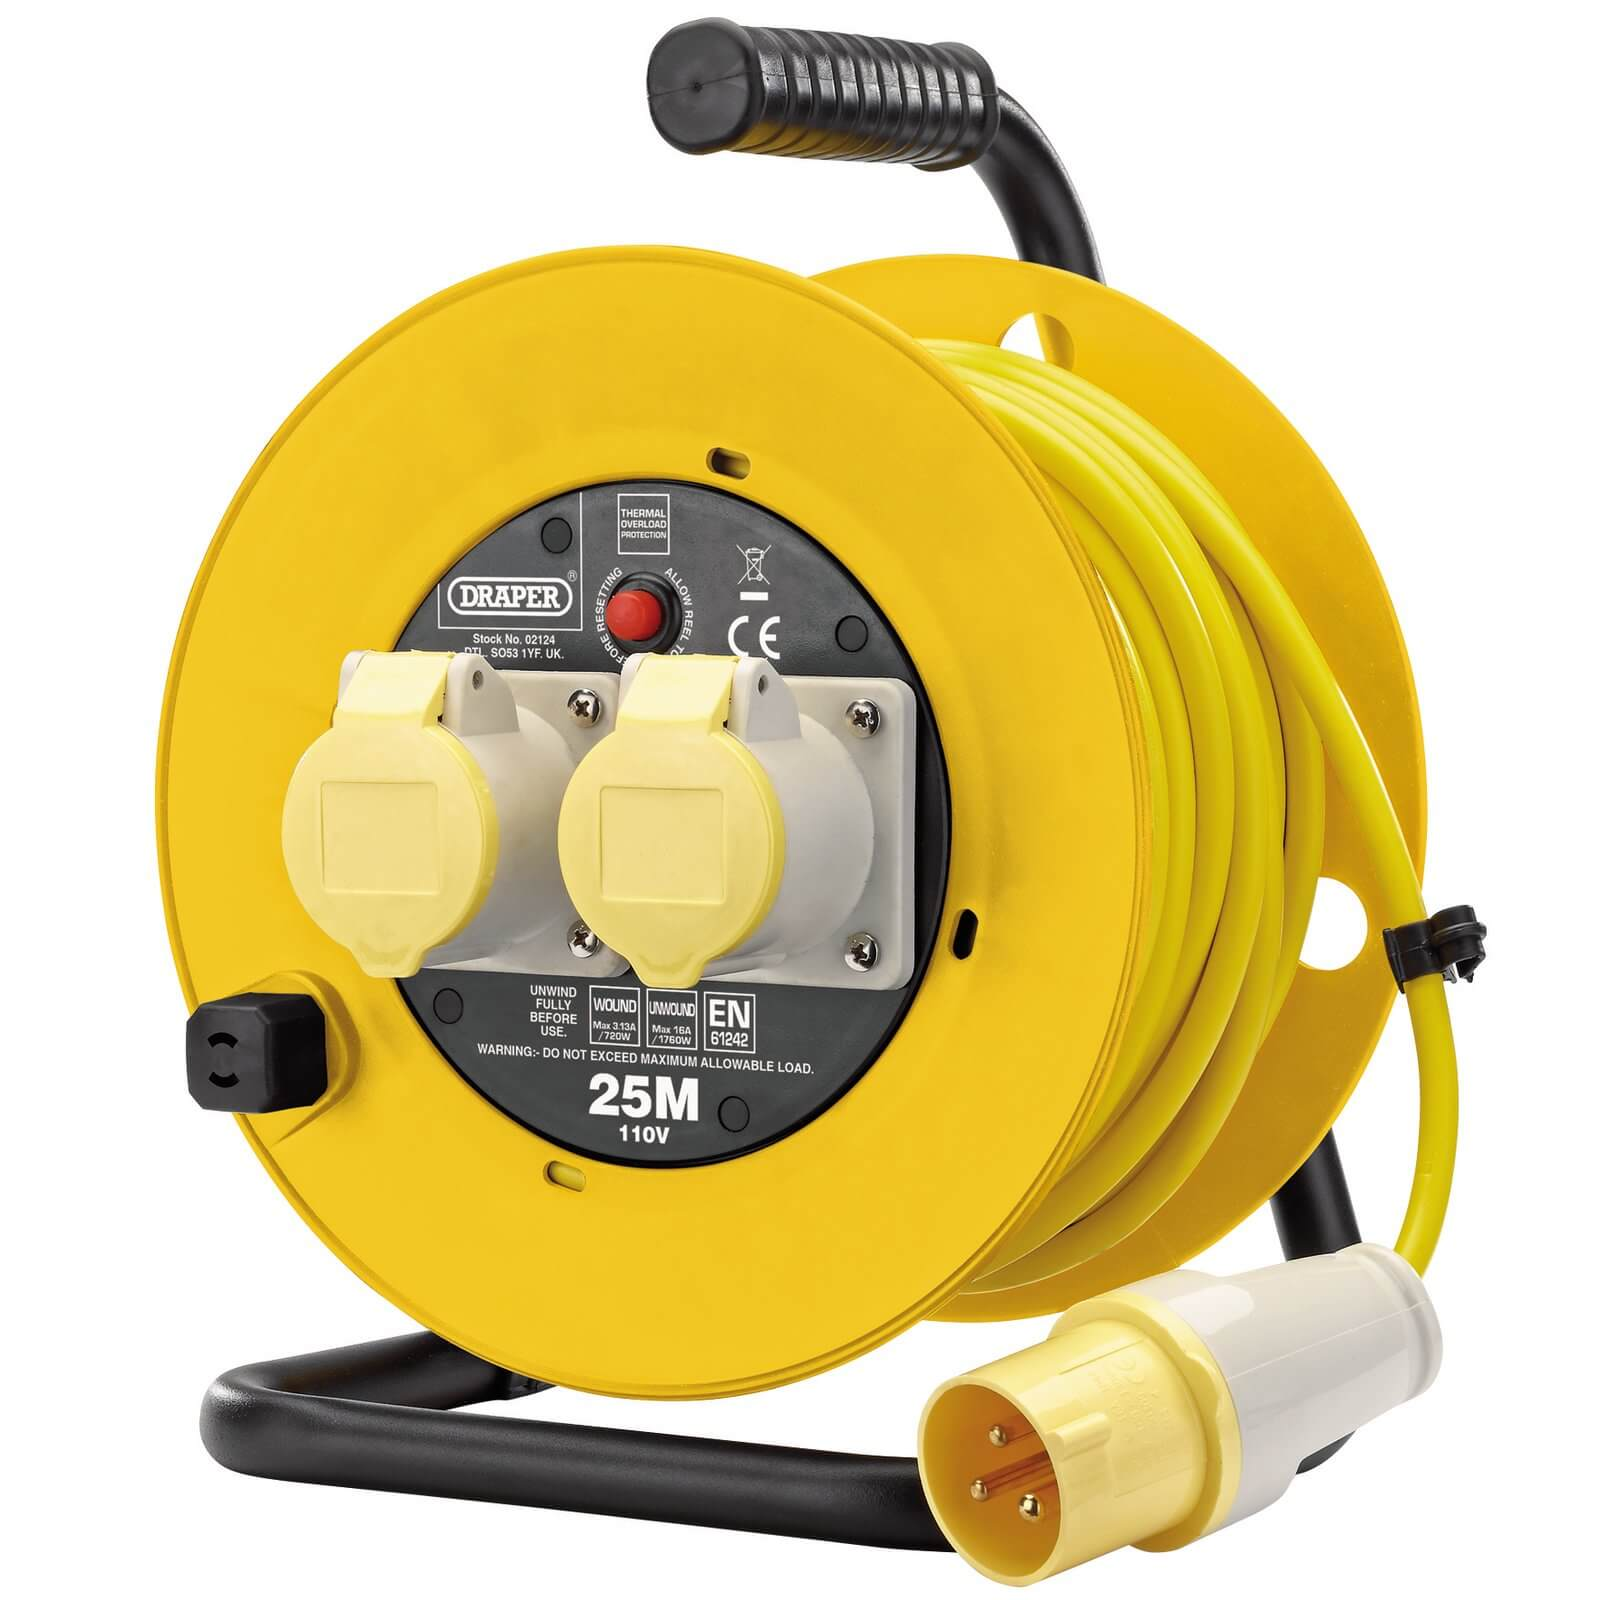 Draper Twin Socket Cable Extension Reel 110v 25m